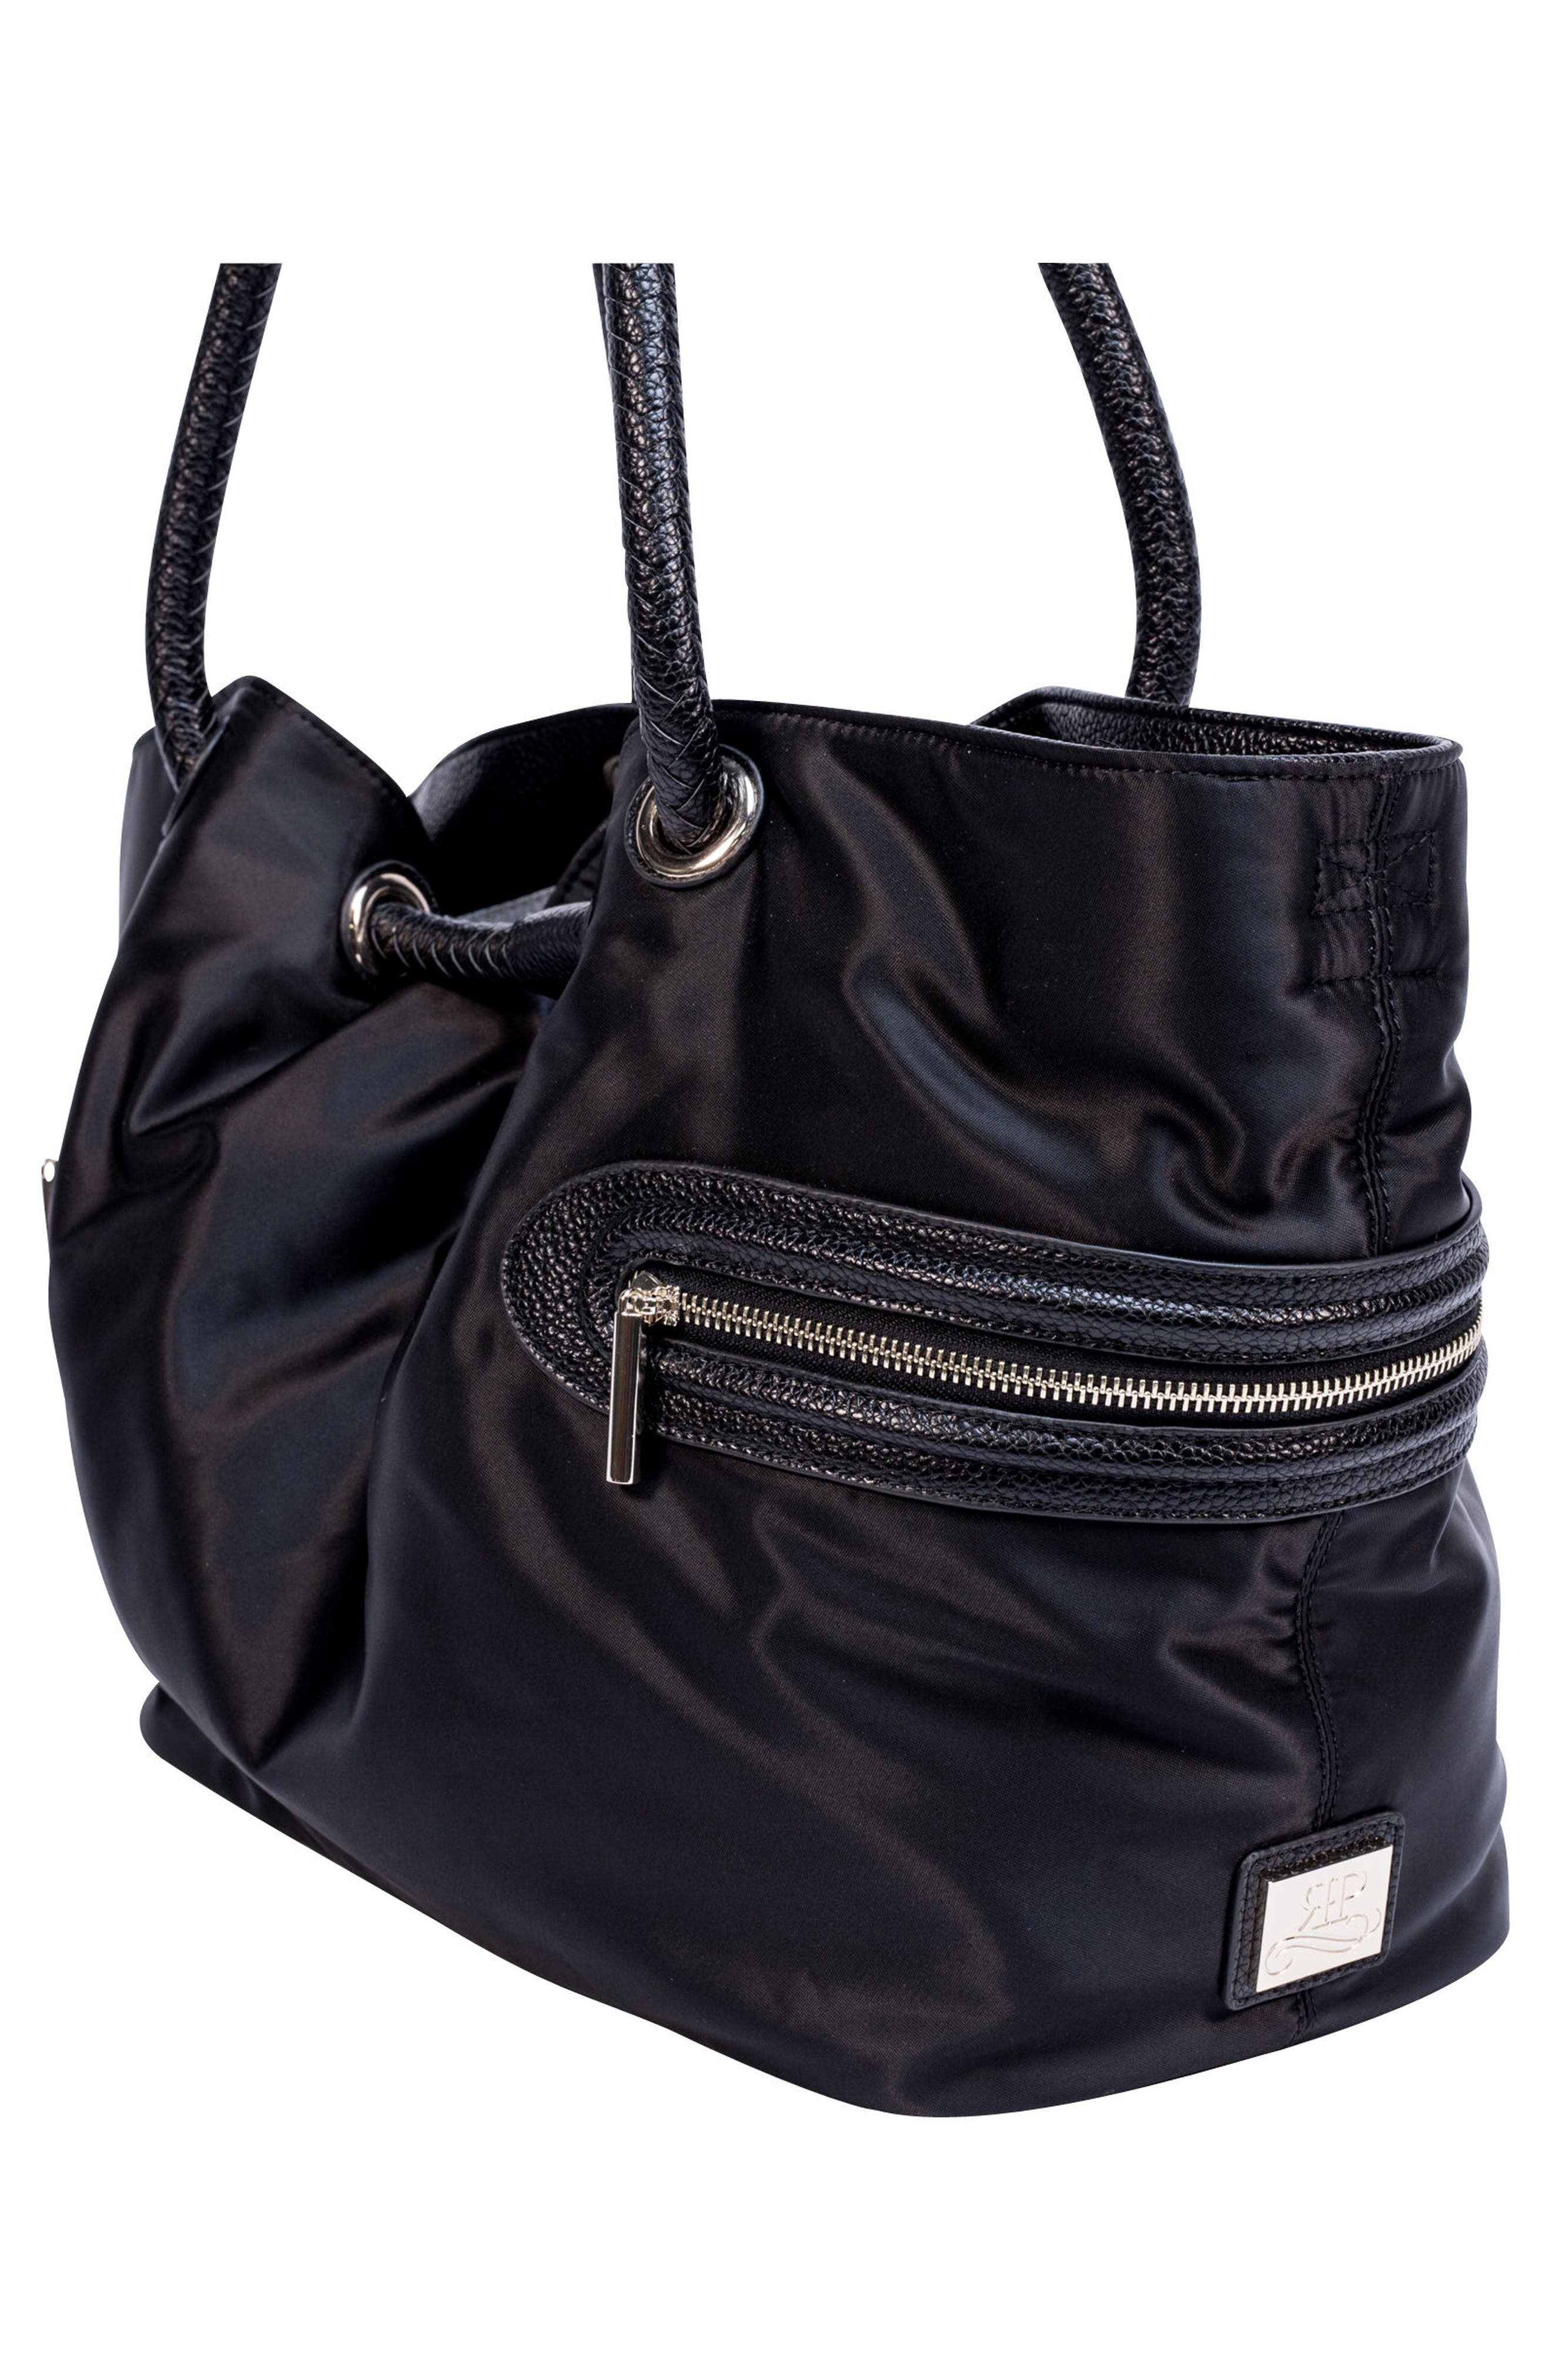 Addison Lane Diaper Bag,                             Alternate thumbnail 5, color,                             Black